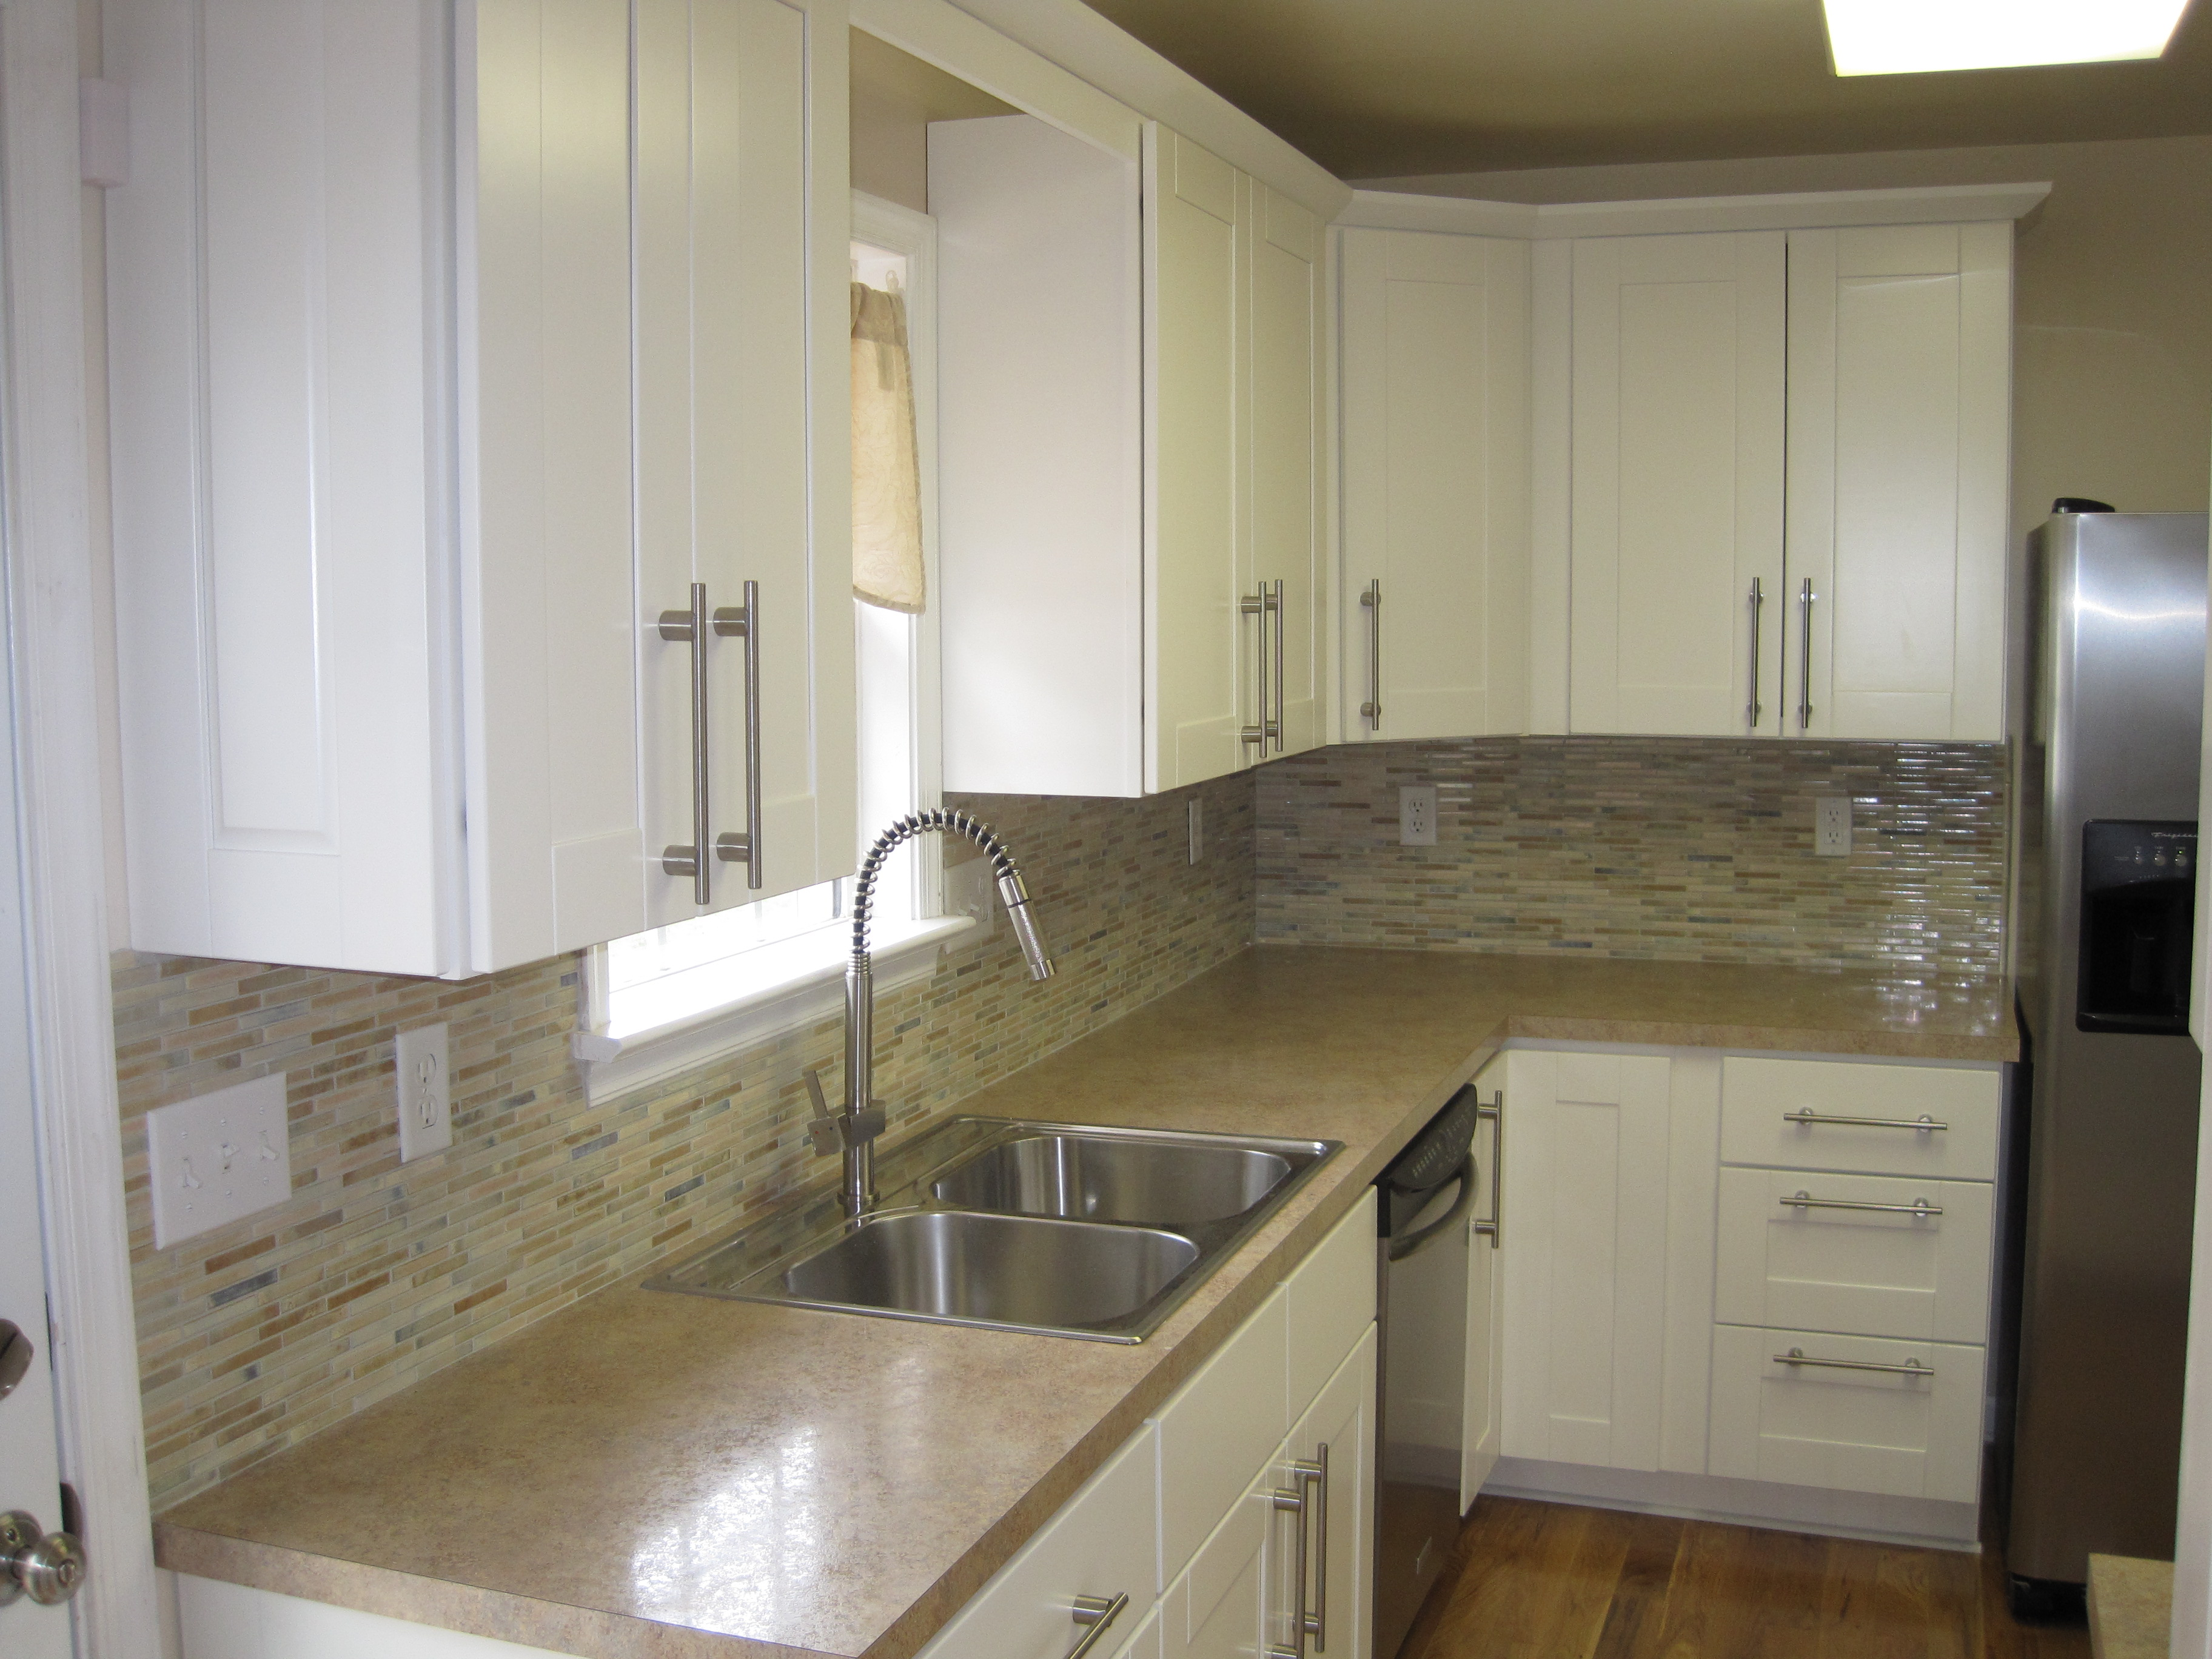 kitchen renovation after kitchen remodeling manassas va Kitchen Remodelling Portfolio Kitchen Renovation Backsplash Tiles